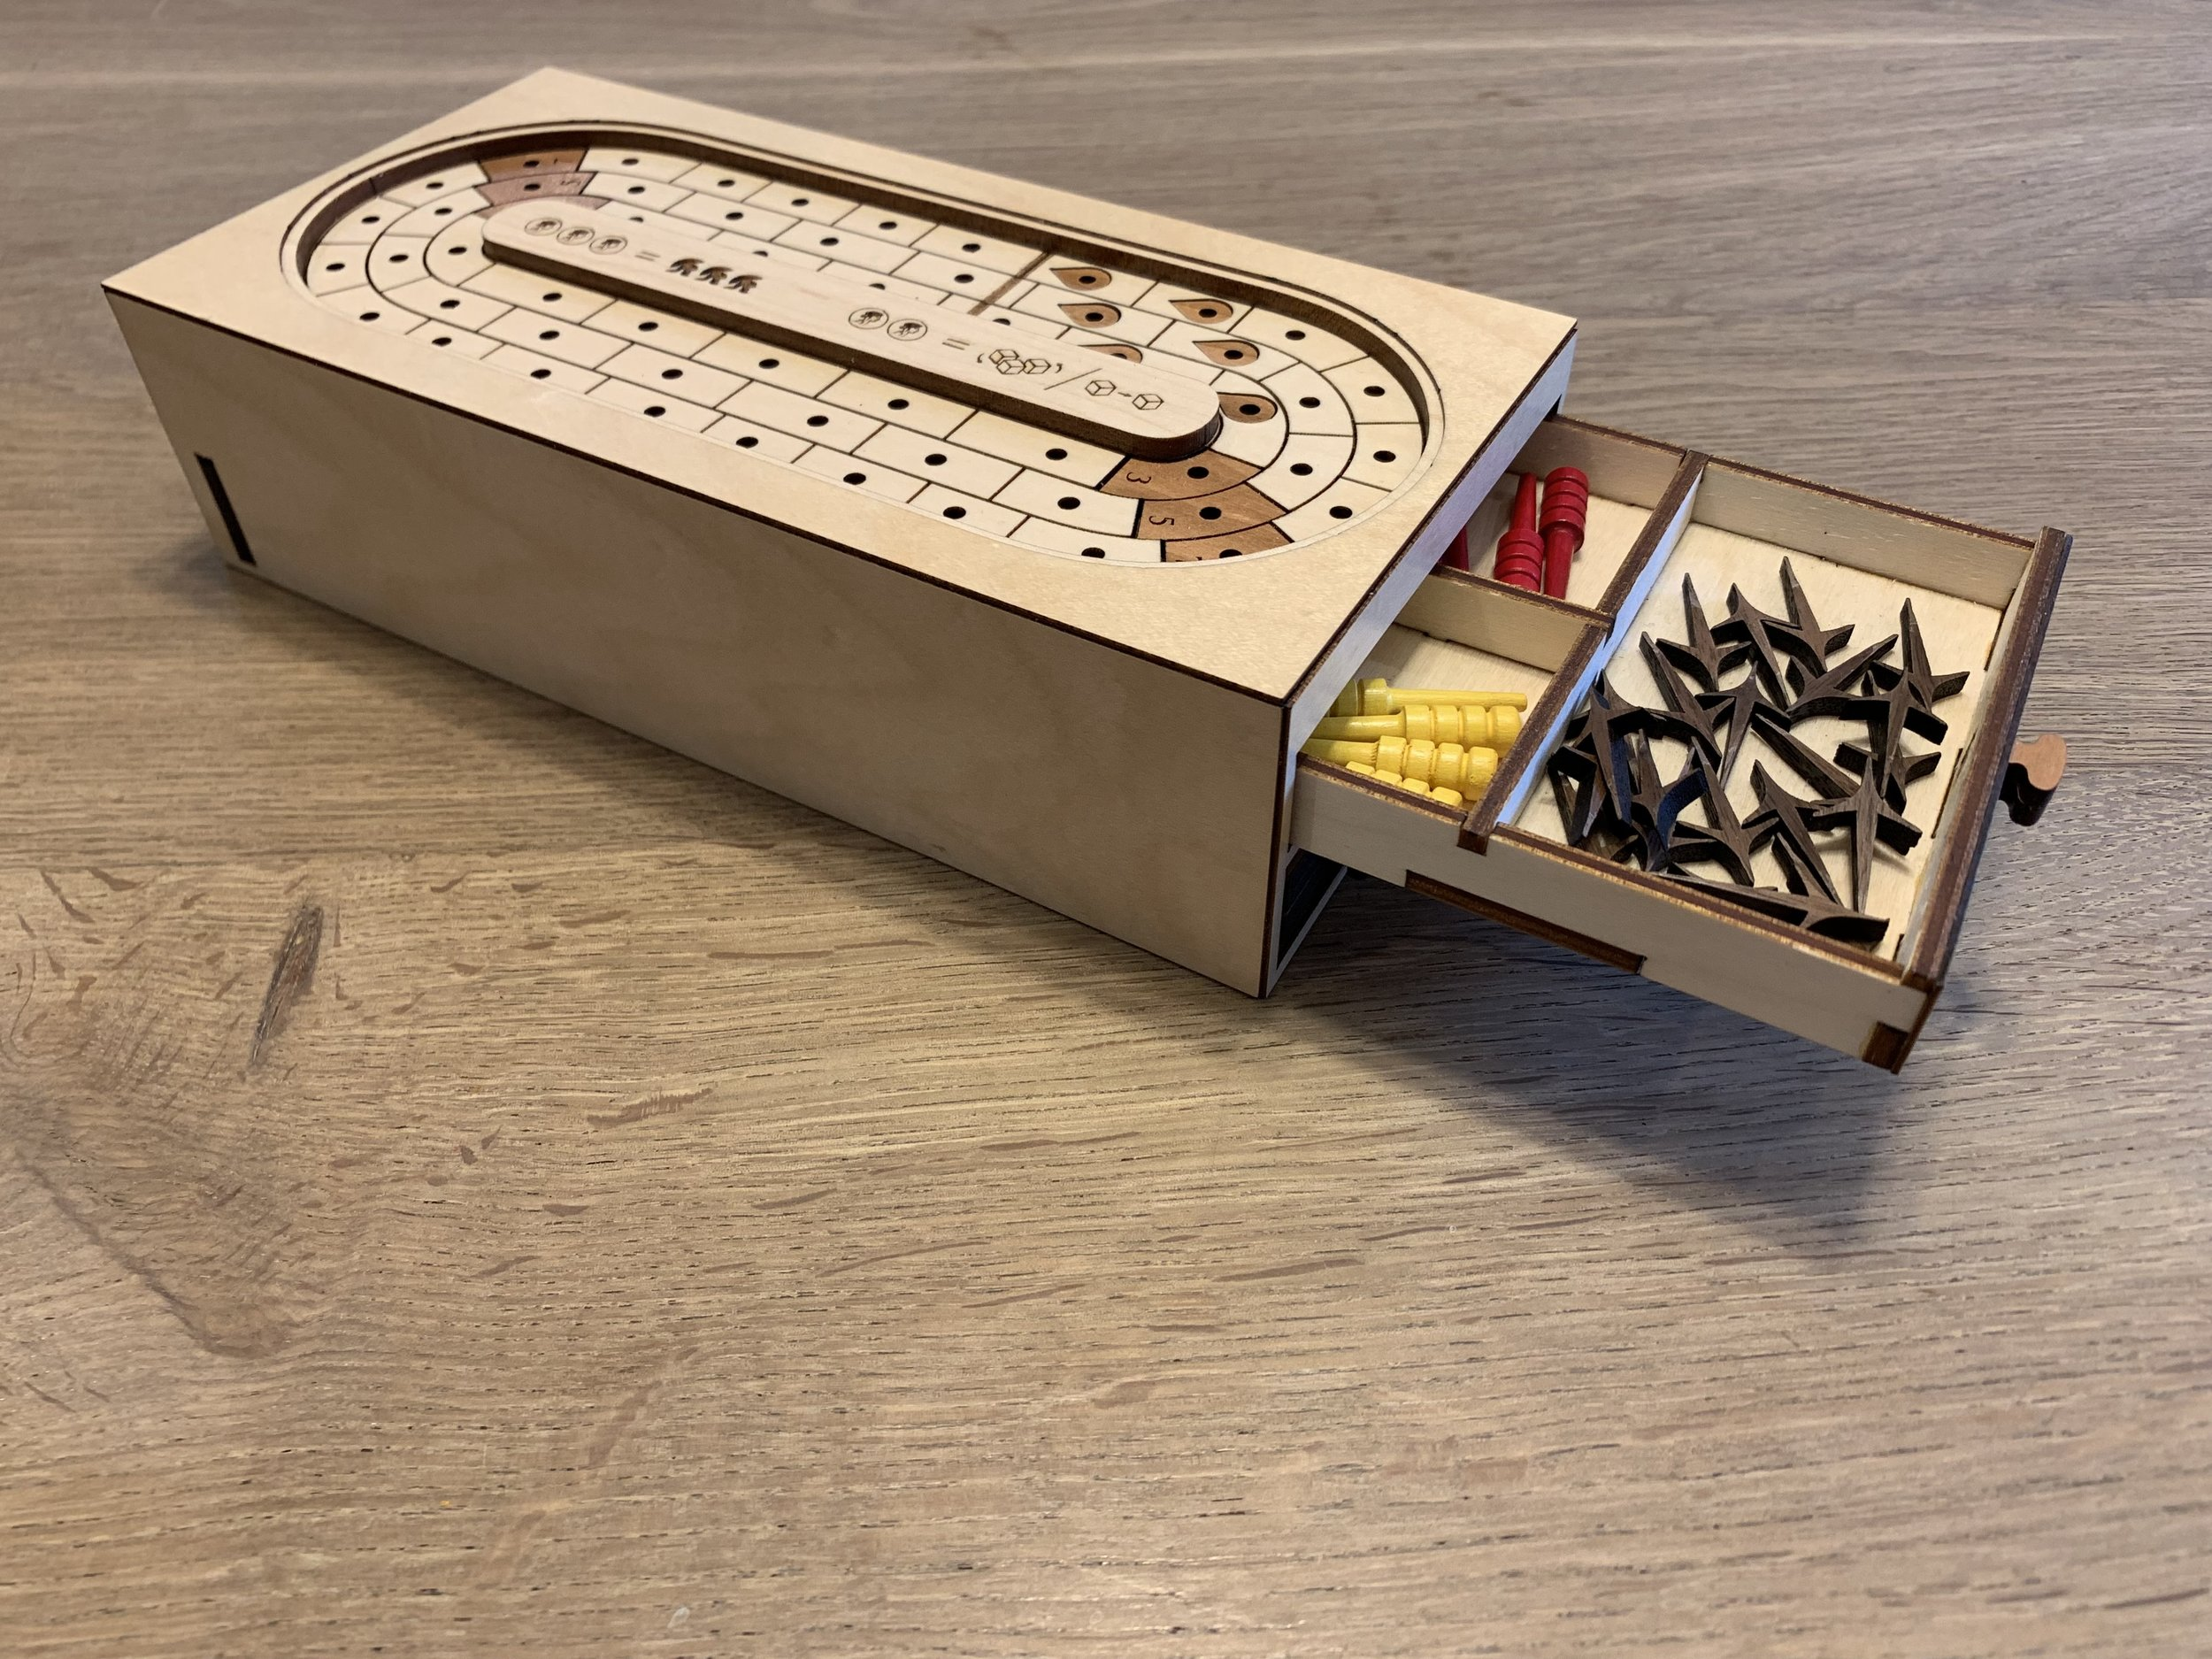 The drawer holds pegs for six players plus all the caltrops you'd ever need.